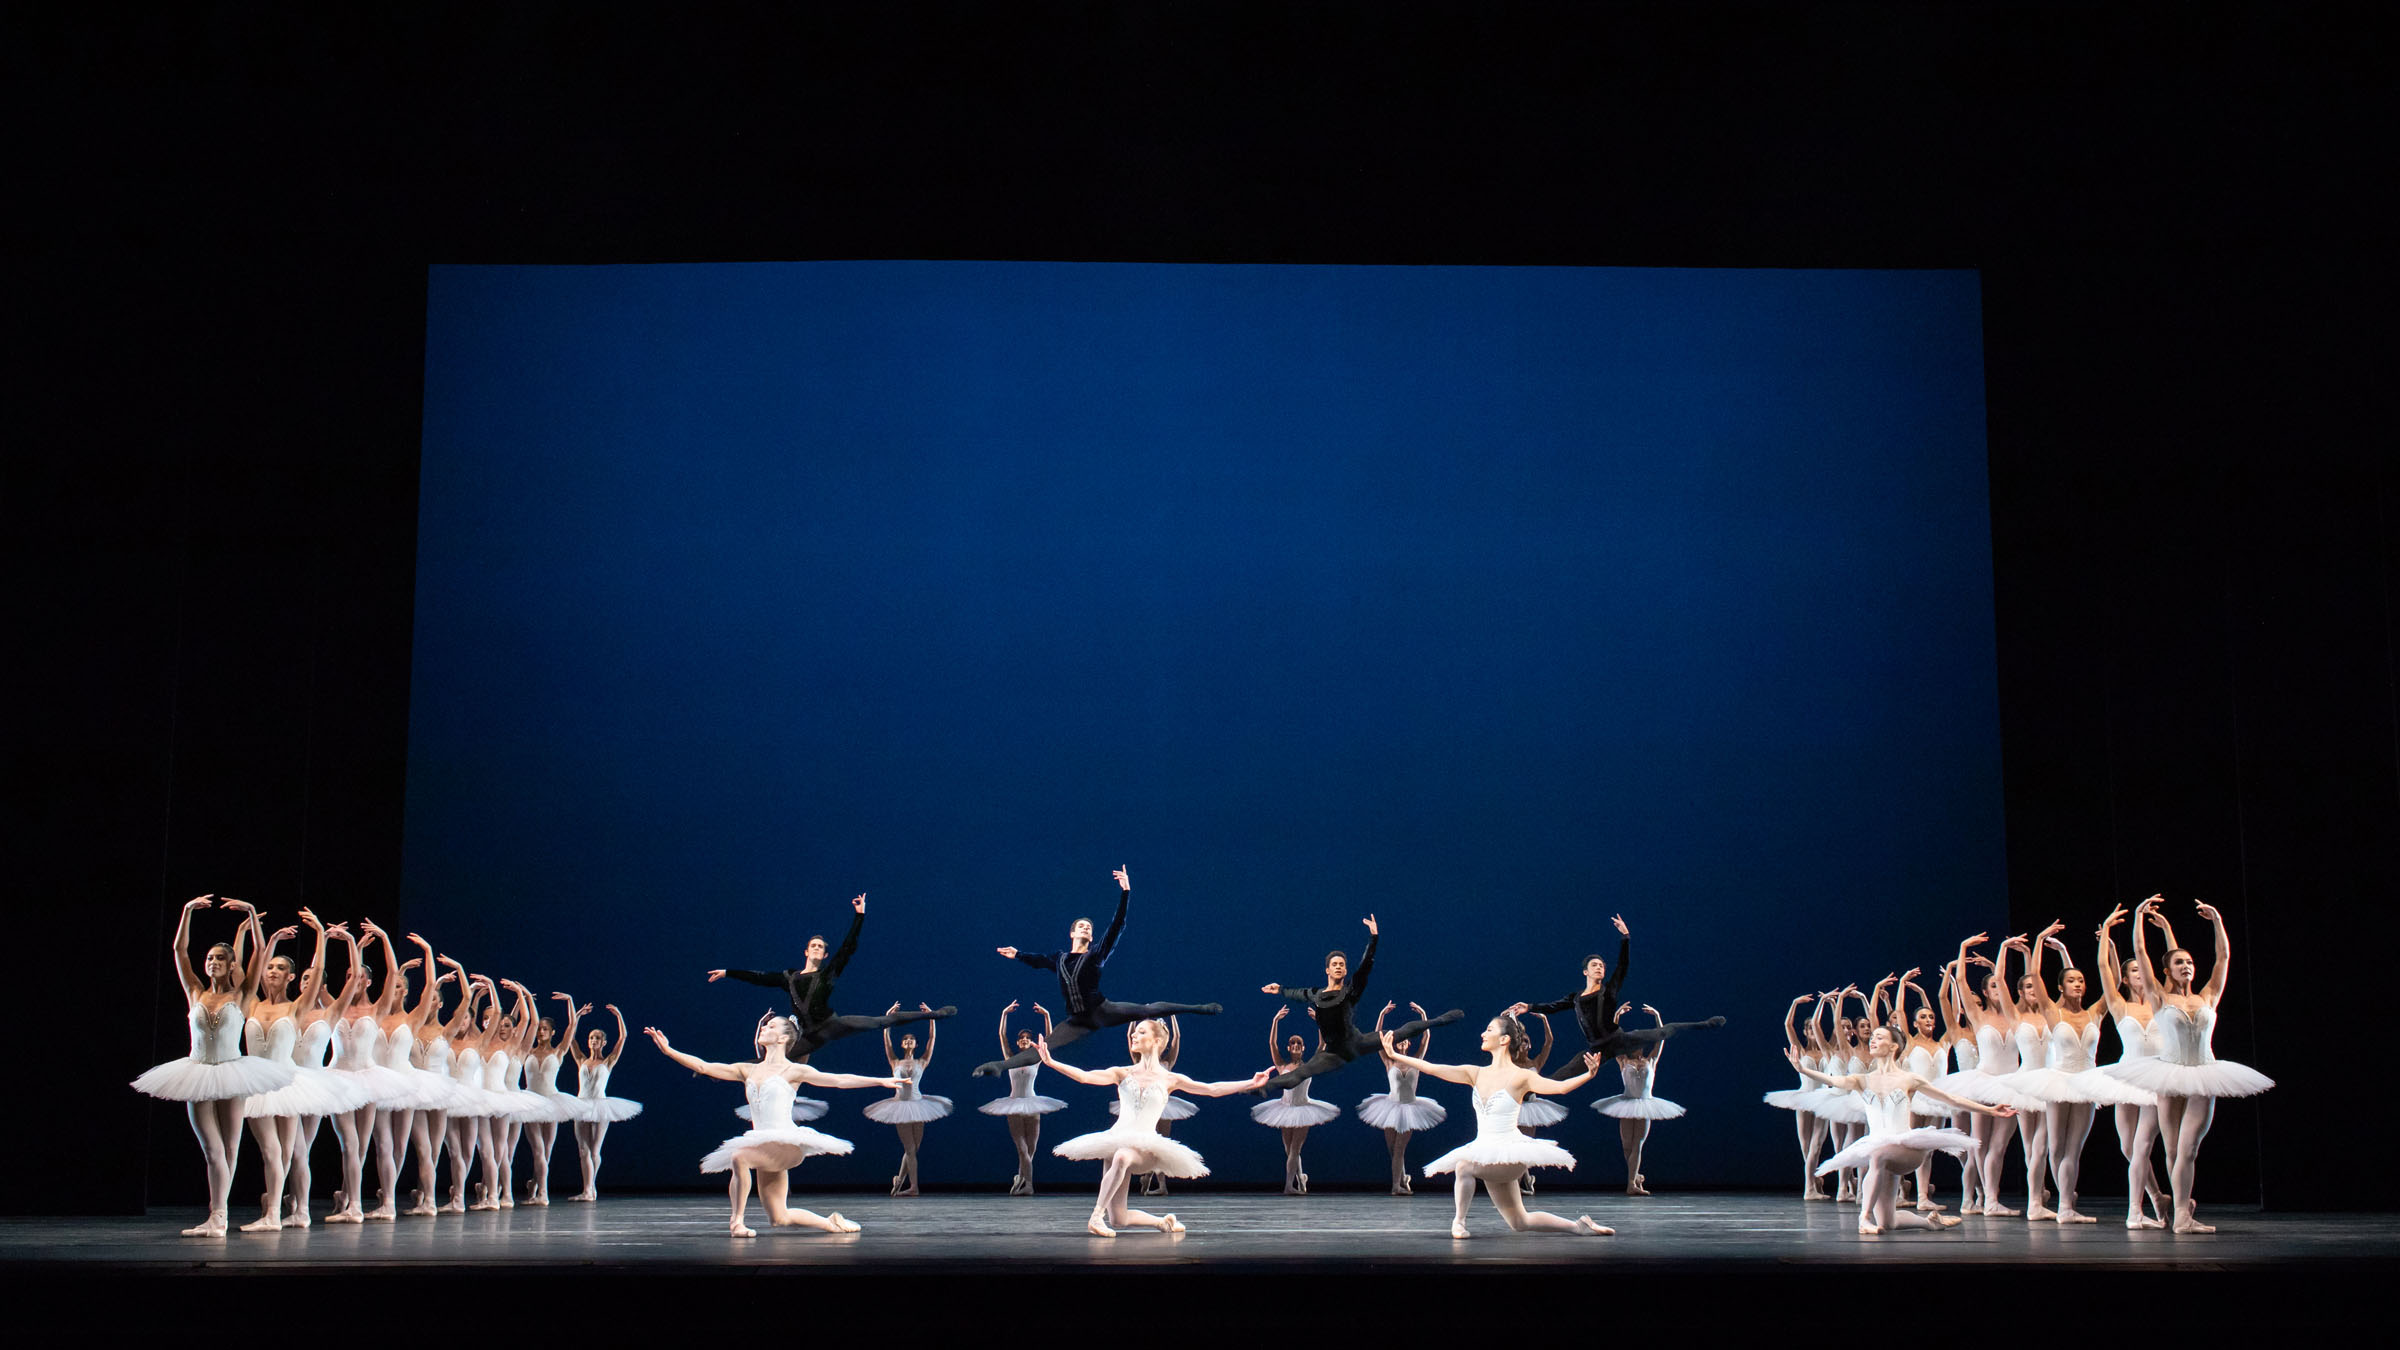 Artists of The Royal Ballet in George Balanchine's Symphony in C, The Royal Ballet Season 2018/19